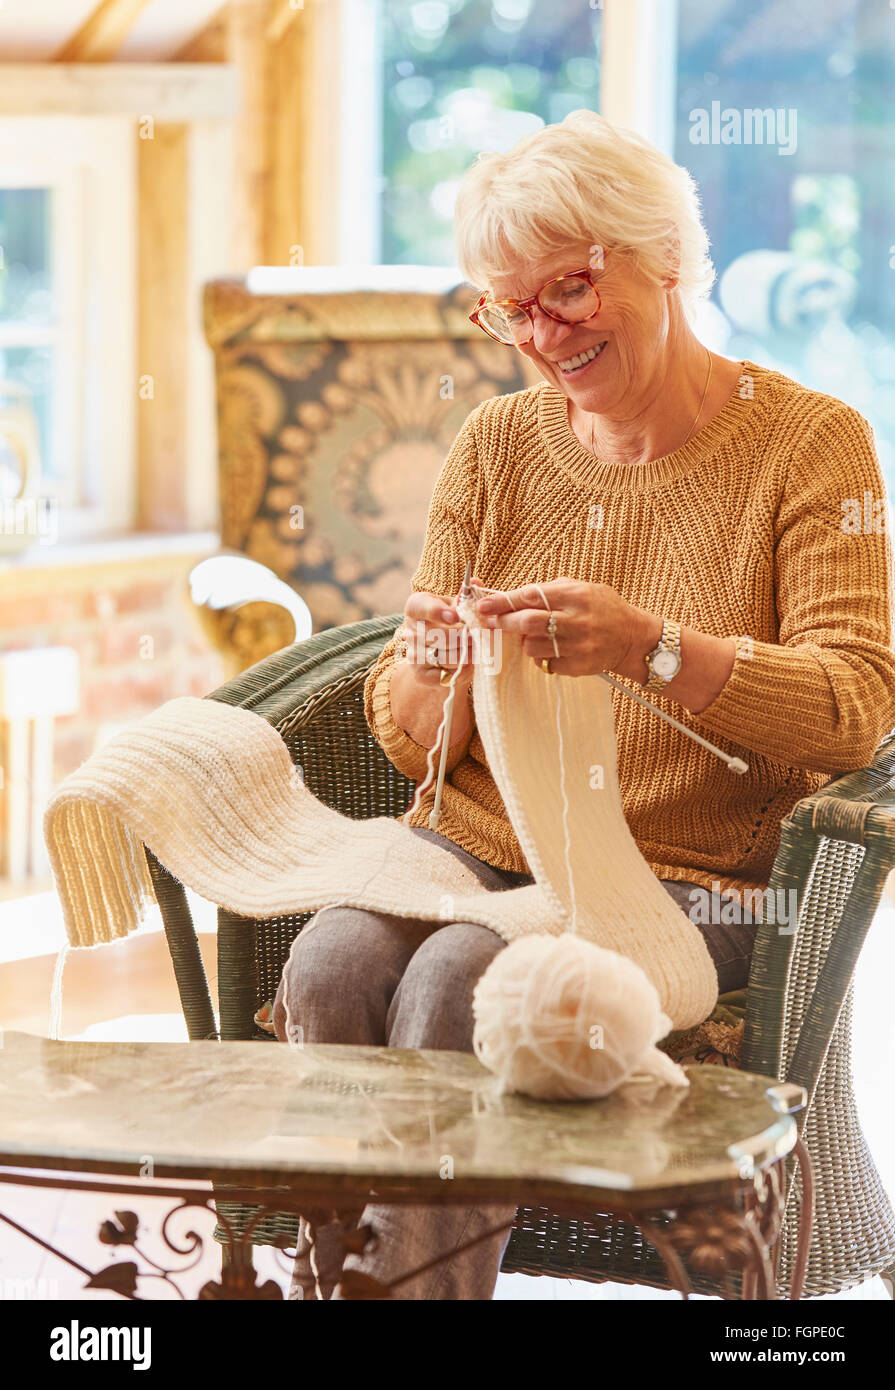 Smiling senior woman knitting scarf - Stock Image